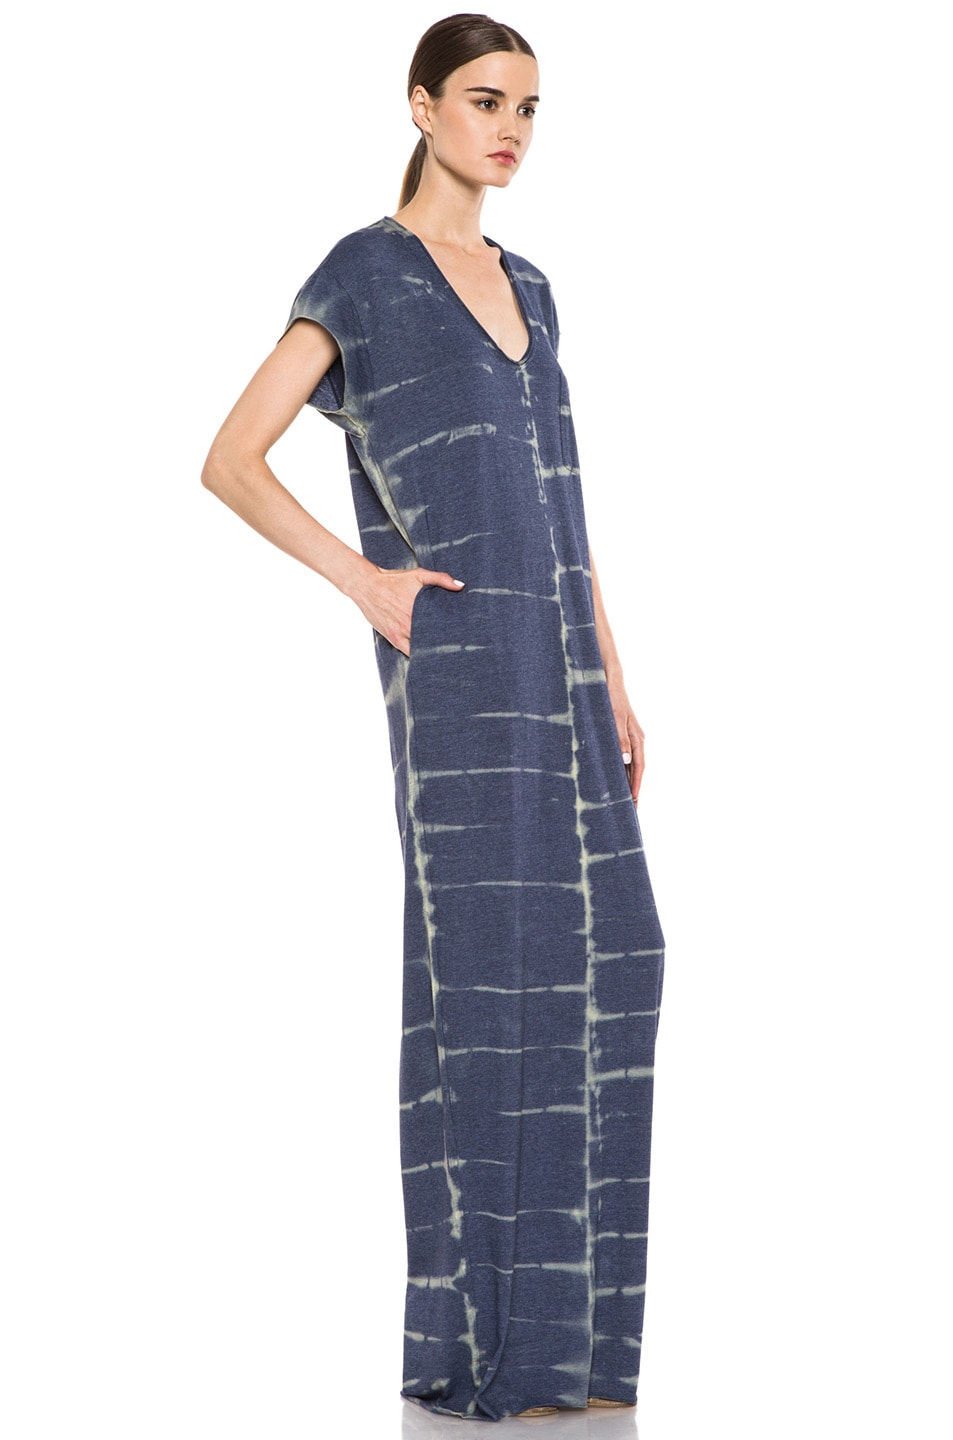 Image 3 of Raquel Allegra Deconstructed Jersey Caftan Dress in X-Ray Blue